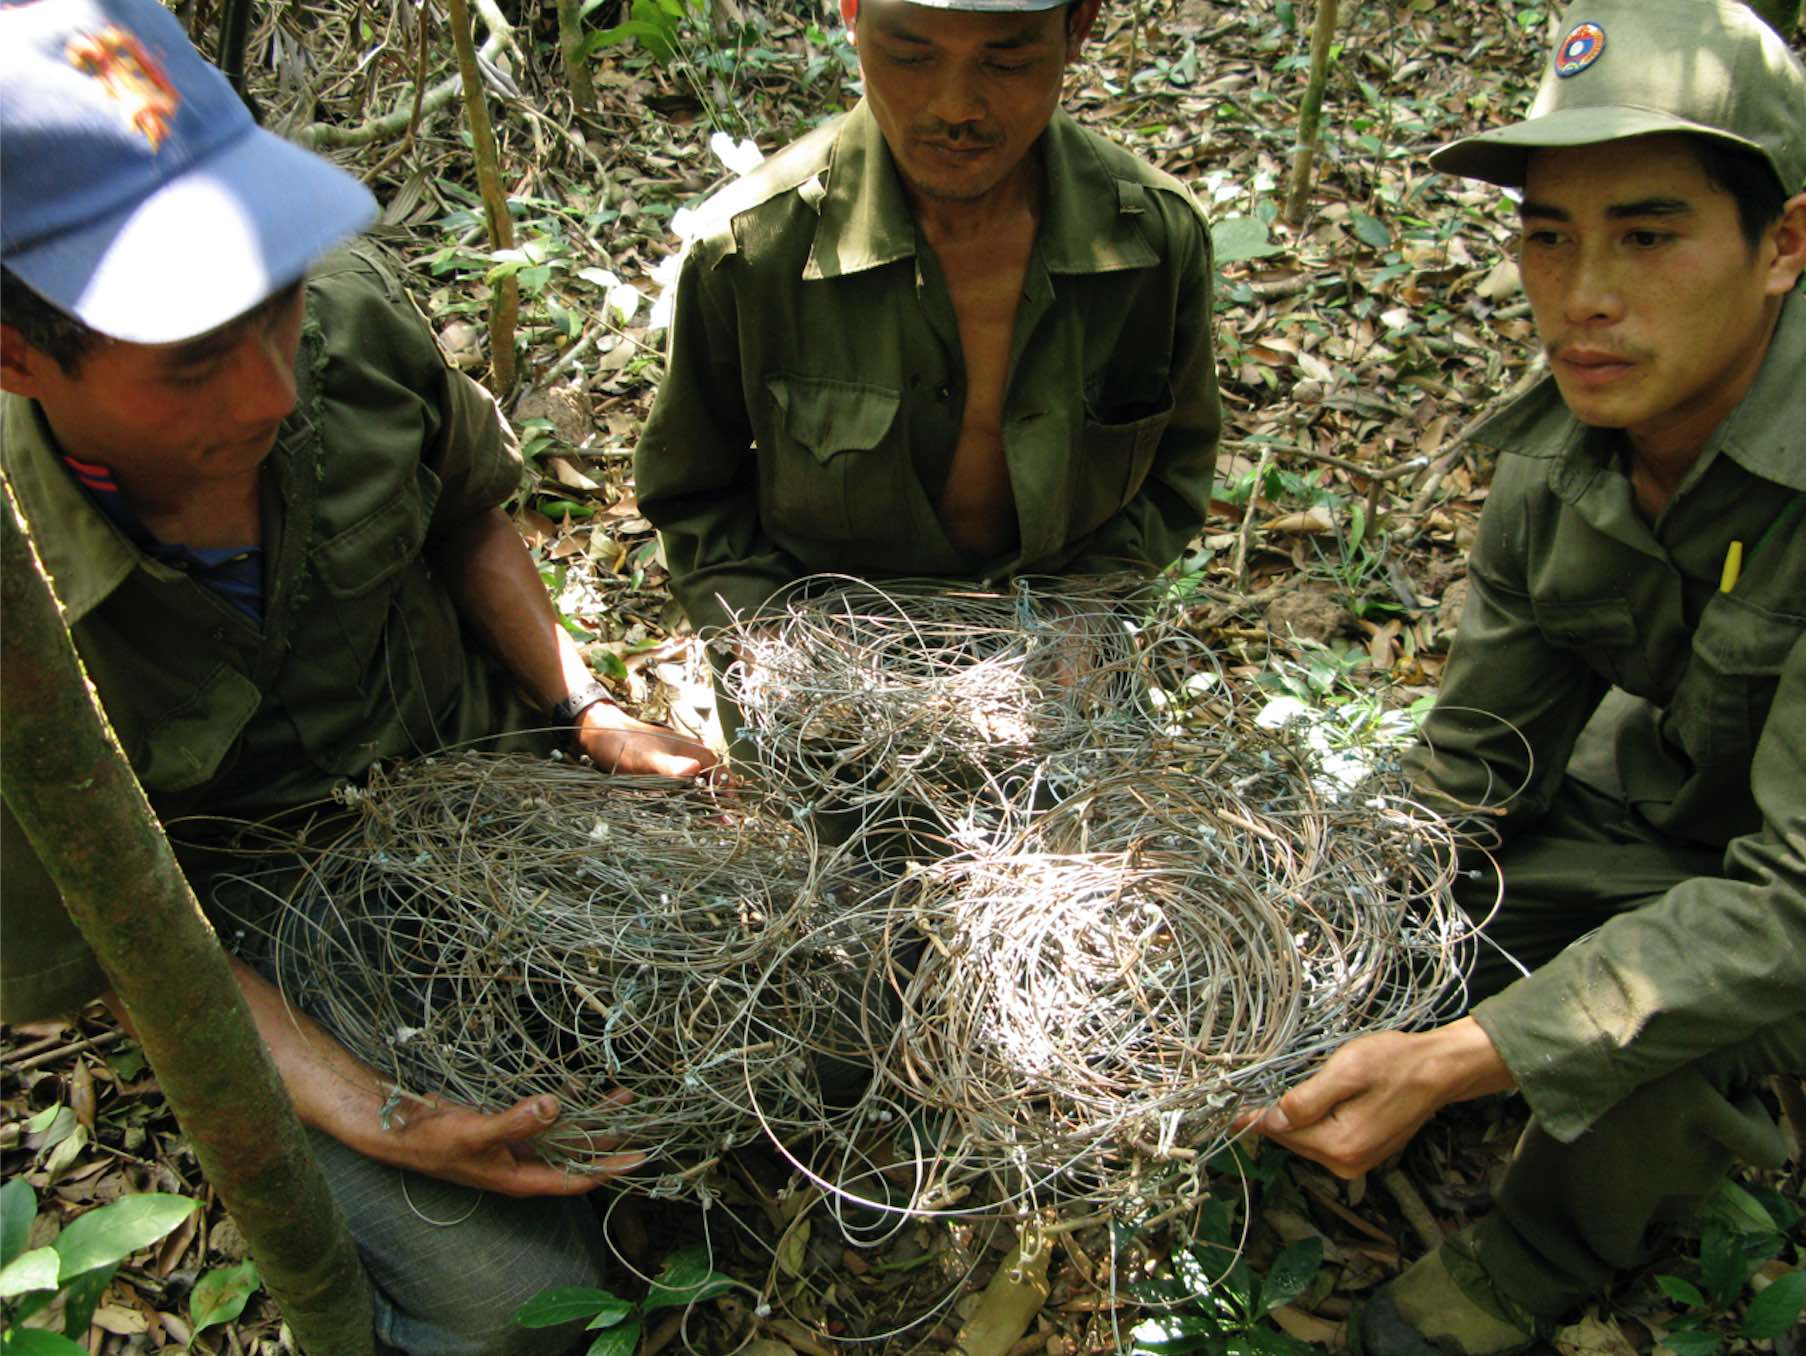 Patrol team with wire snares